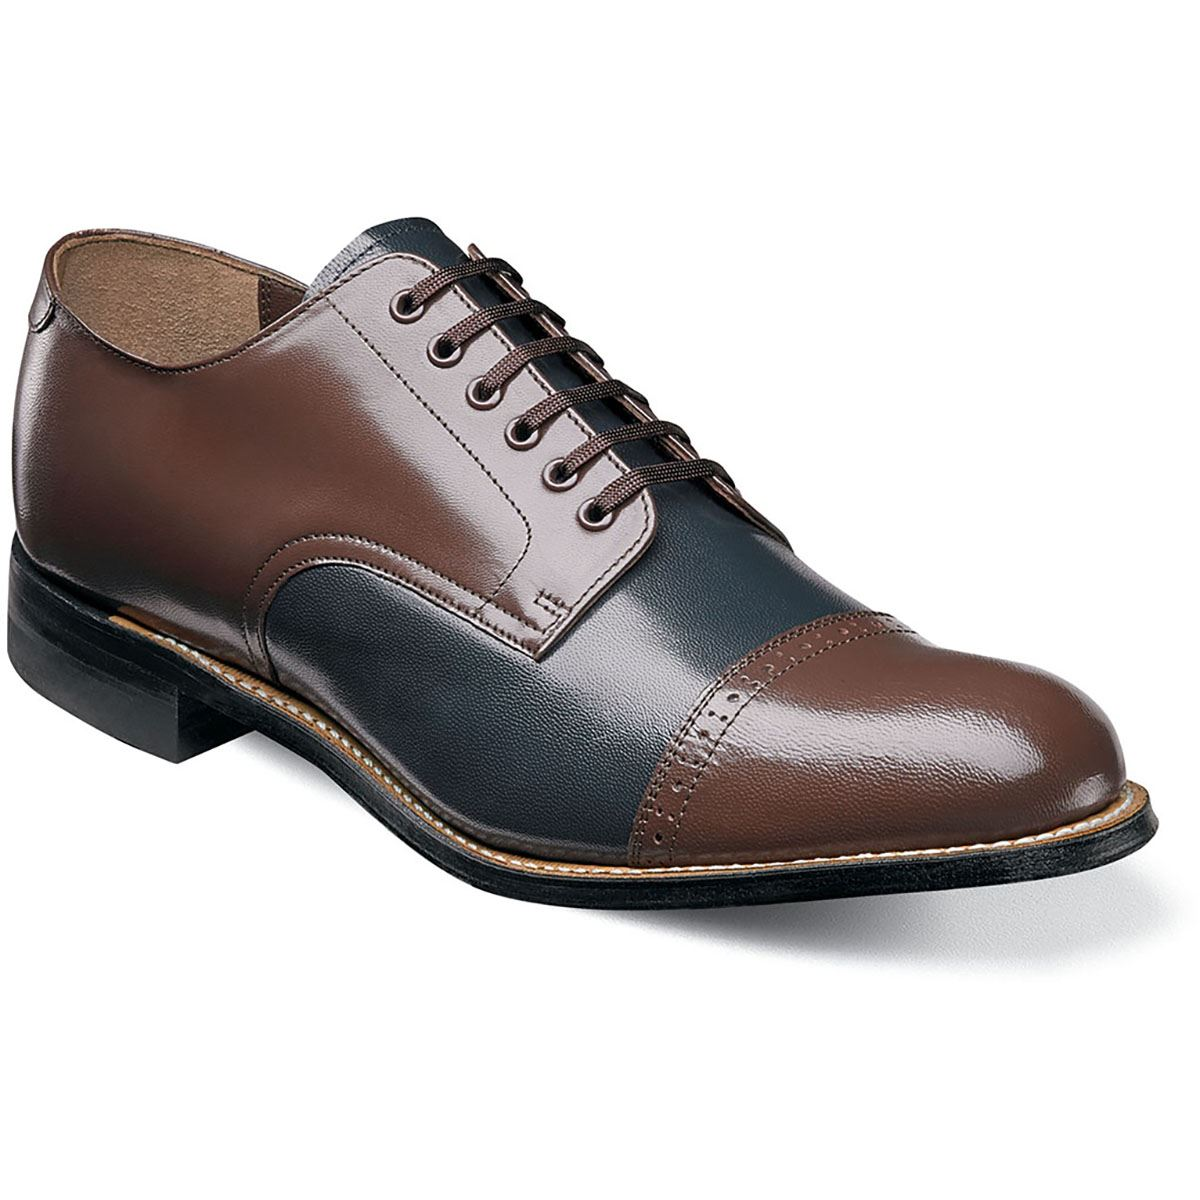 Stacy Adams Para Hombre Madison Cap Toe Oxford, Azul Azul Azul marino Multi (00012-492) c41eb5